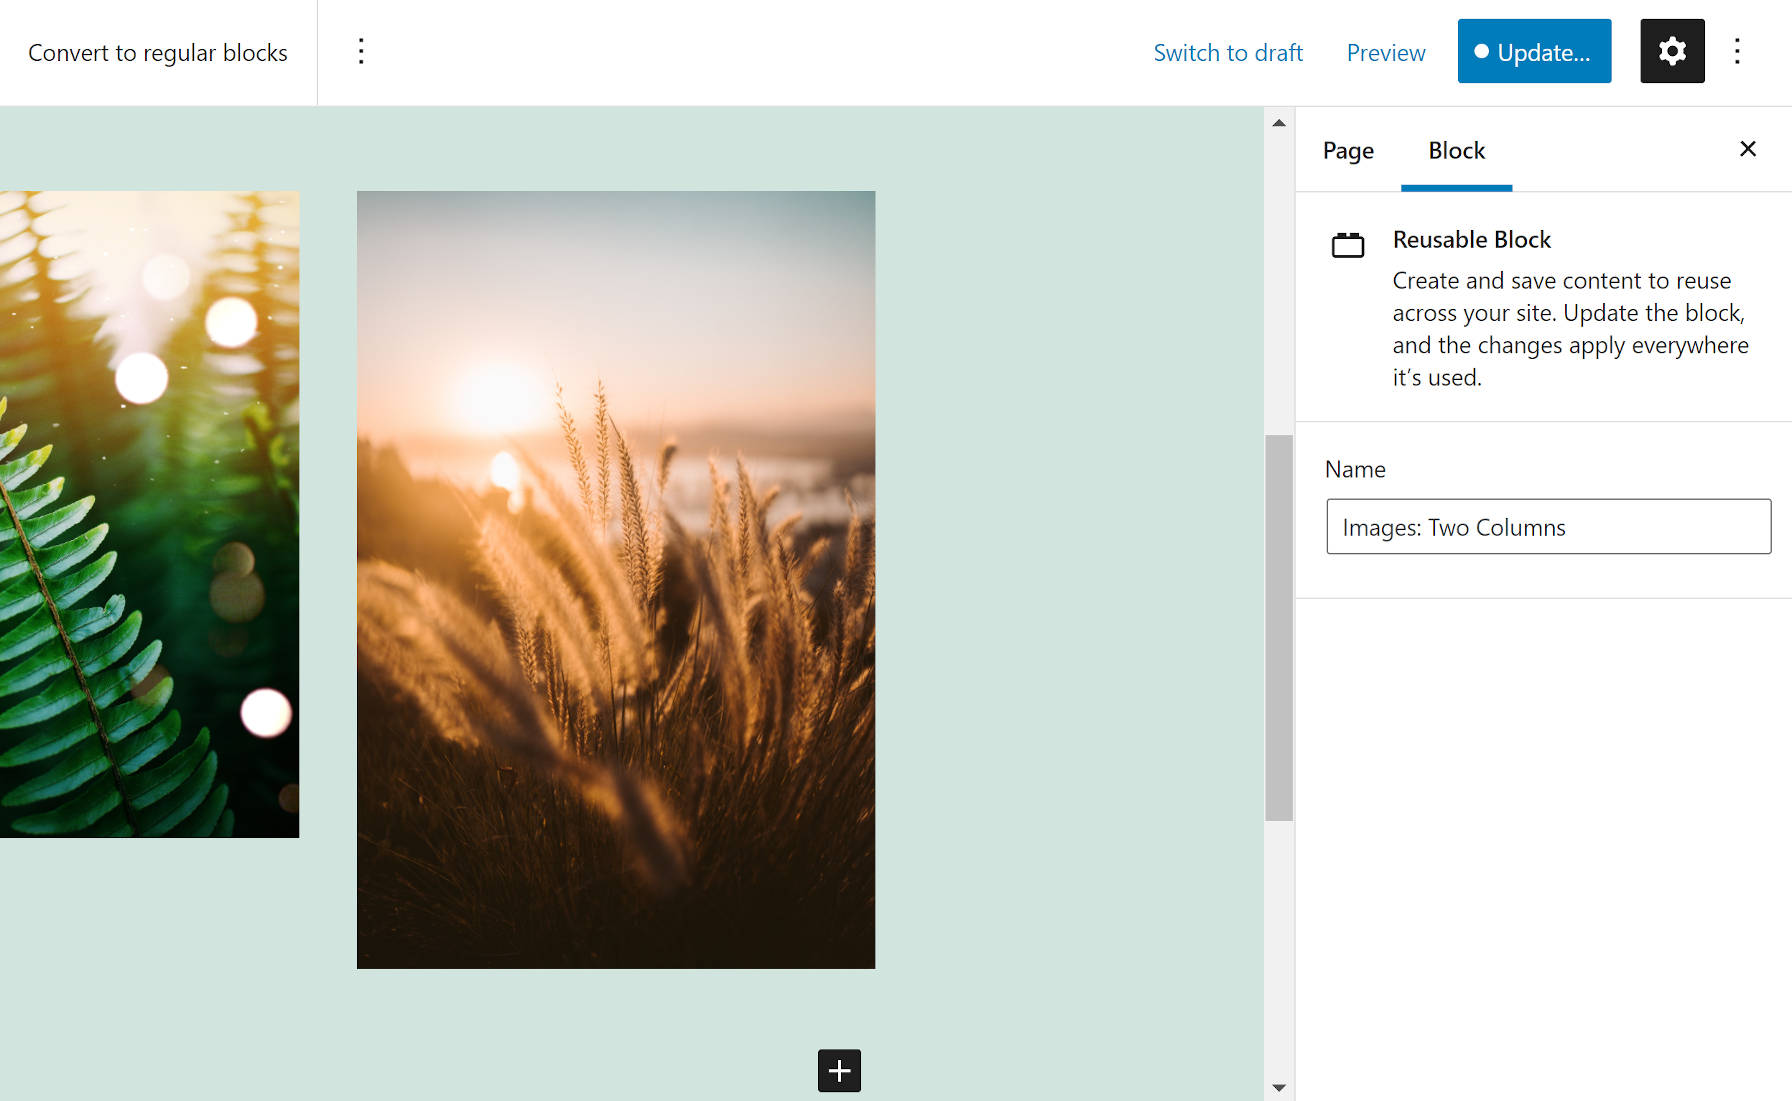 Editing the name of a reusable block in the WordPress editor.